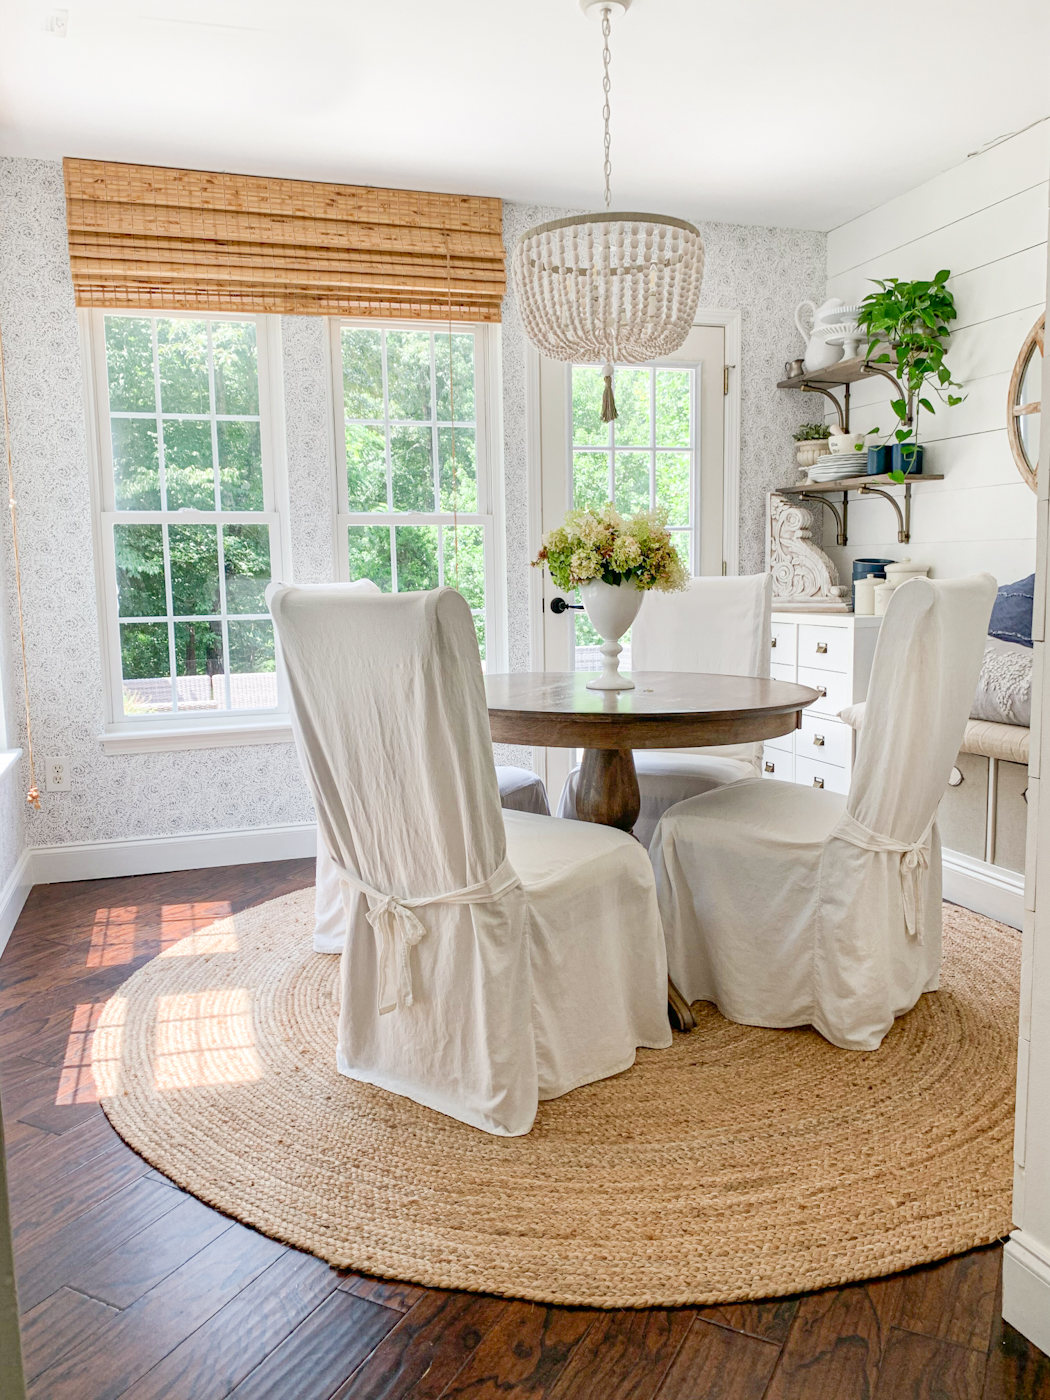 Wallpaper Inspiration - Breakfast Room by Home Stories A to Z